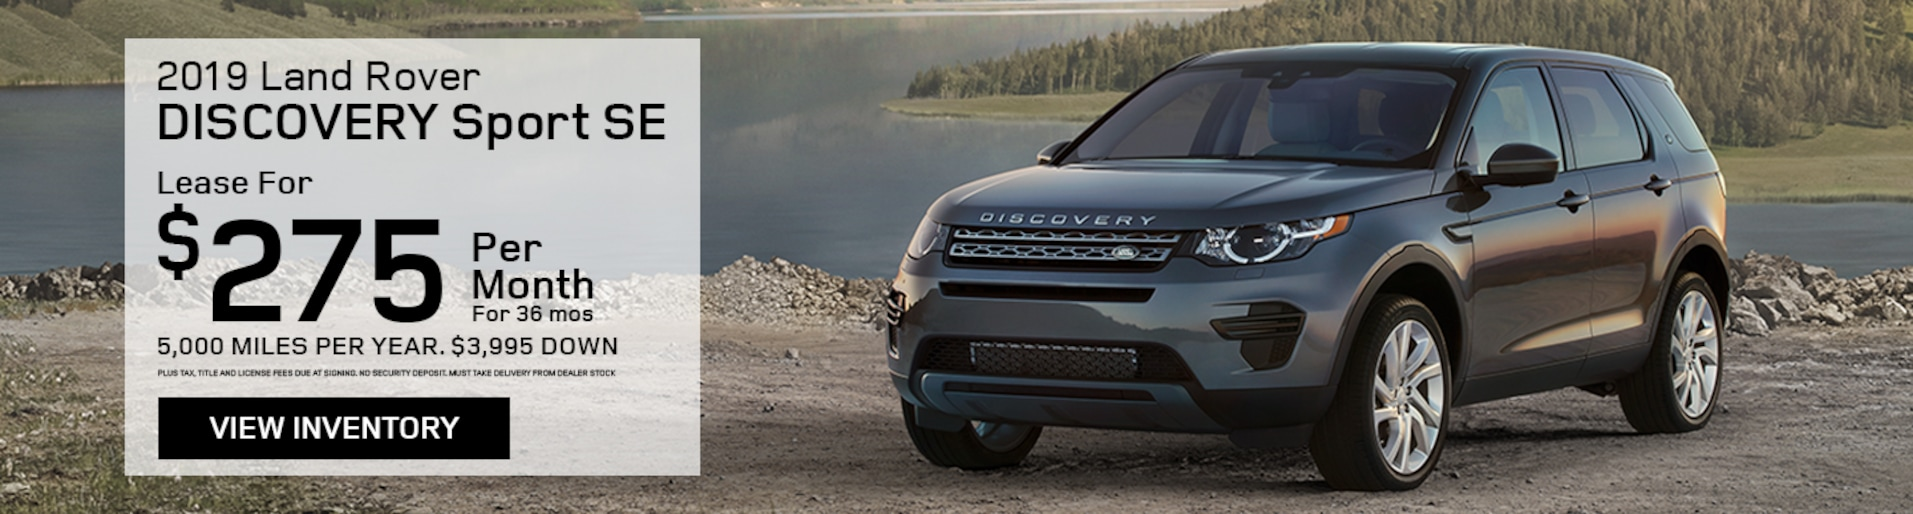 Range Rover Dealers In Ma >> Land Rover Hanover New Used Land Rover Dealer Near Boston Ma